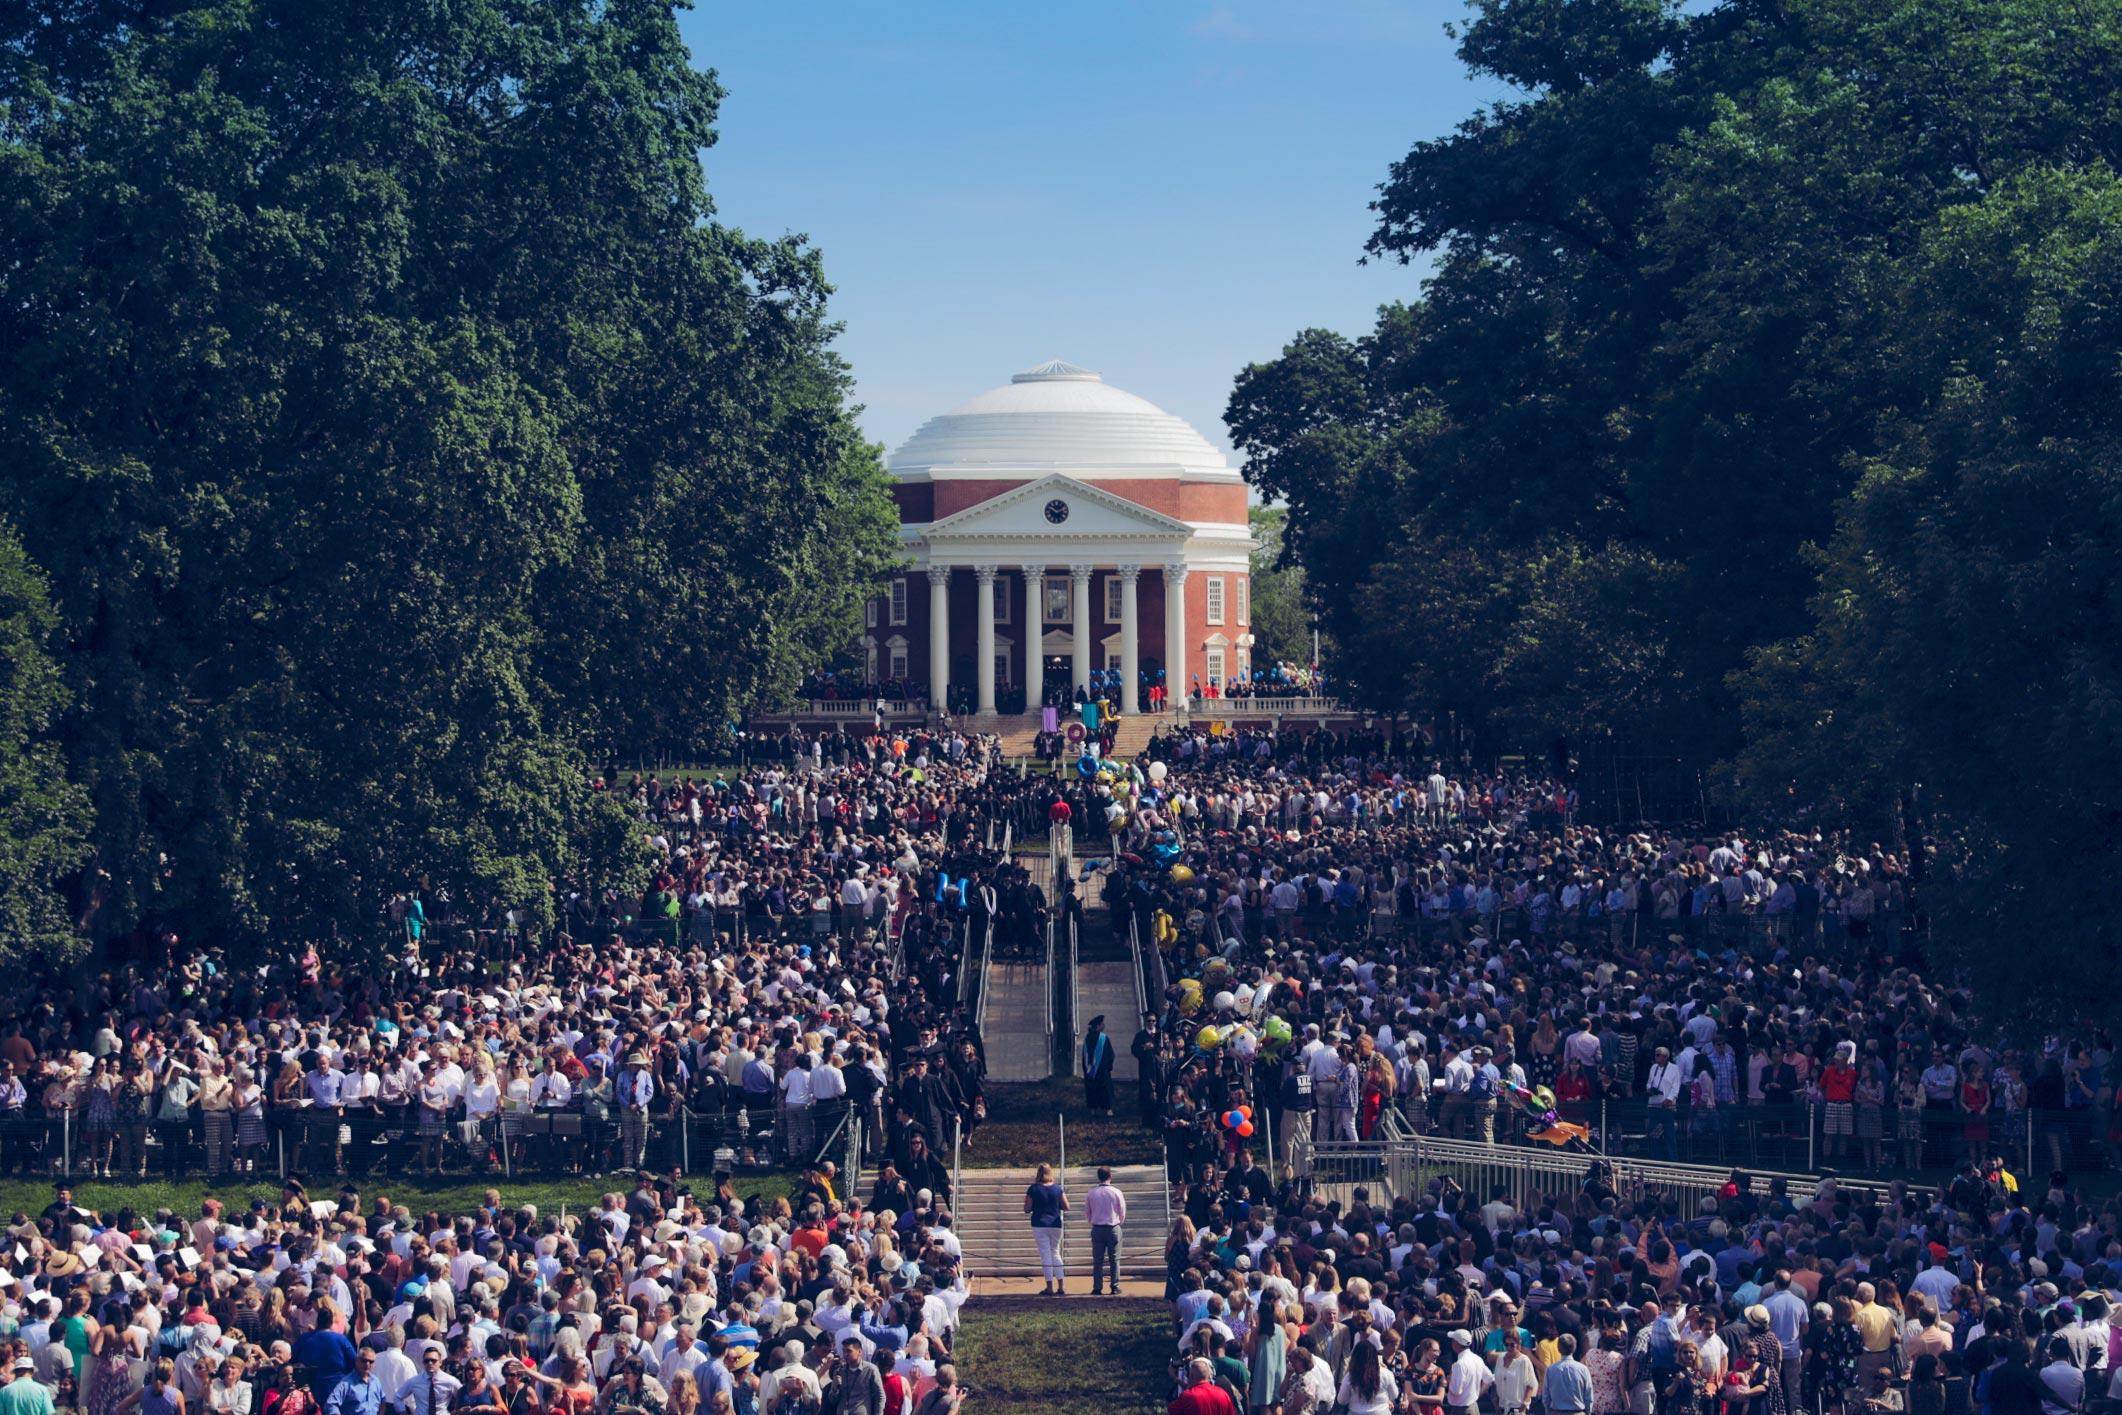 UVA Celebrates End of 2018-19 Academic Year With Three-Day Finals Weekend